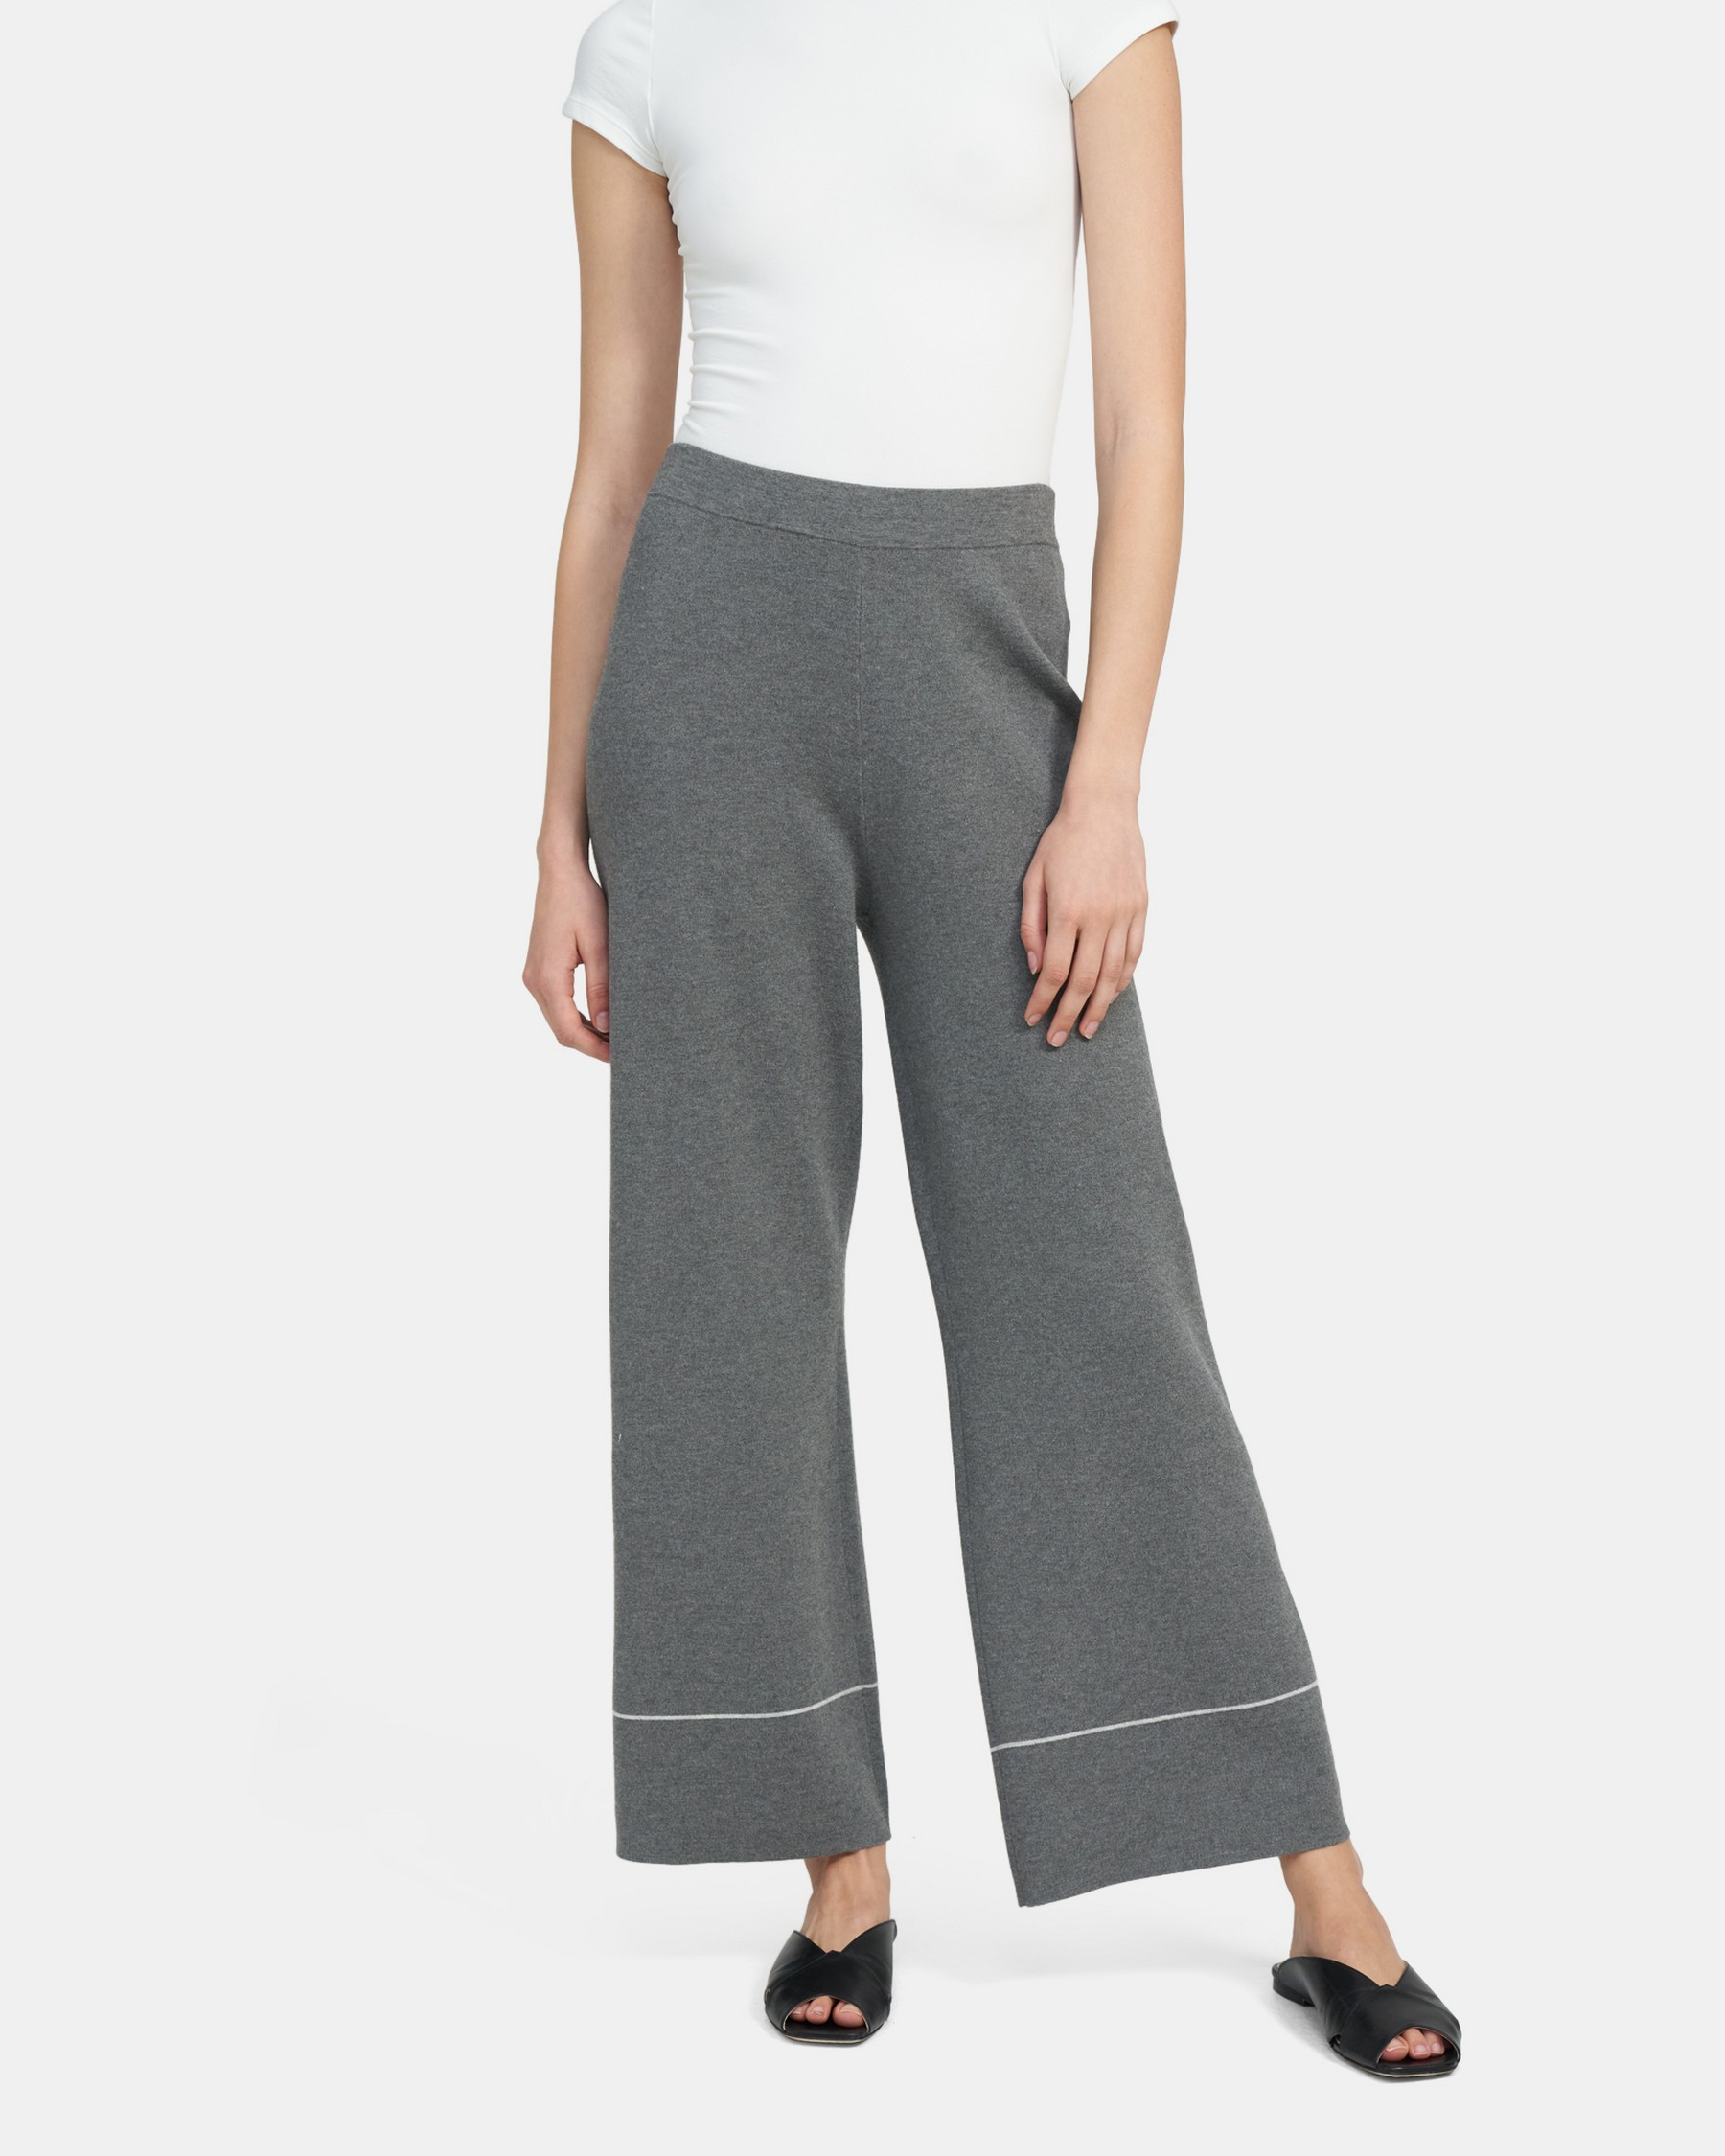 Tipped Knit Pant in Viscose Knit   Theory